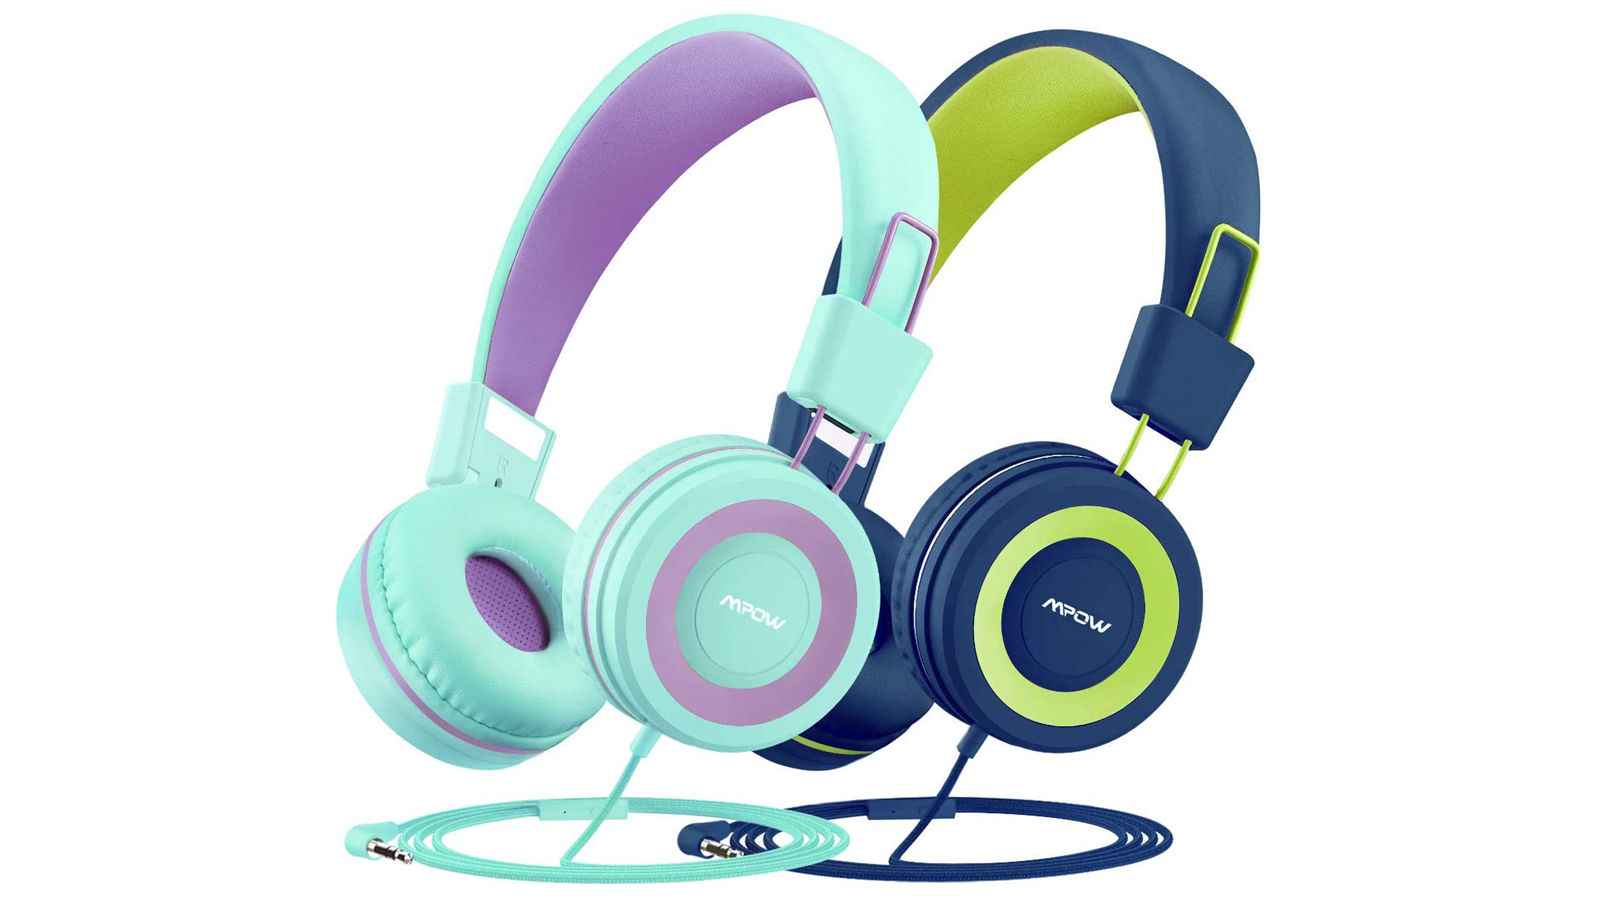 Mpow CH8 2-pack headphones in different colors